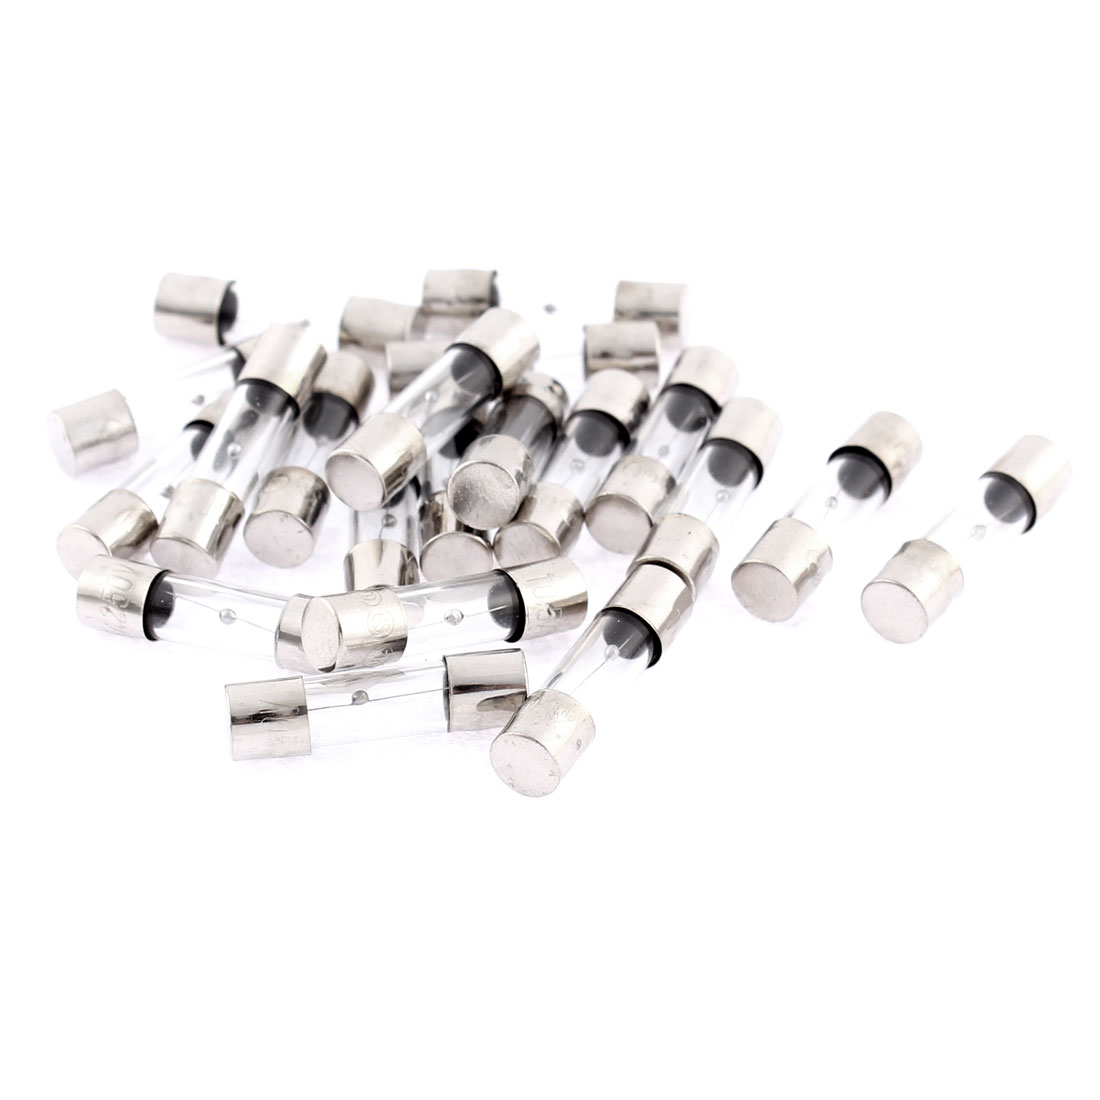 20Pcs 250V 0.5A Slow Blow Time Delay Glass Fuses 5mm x 20mm